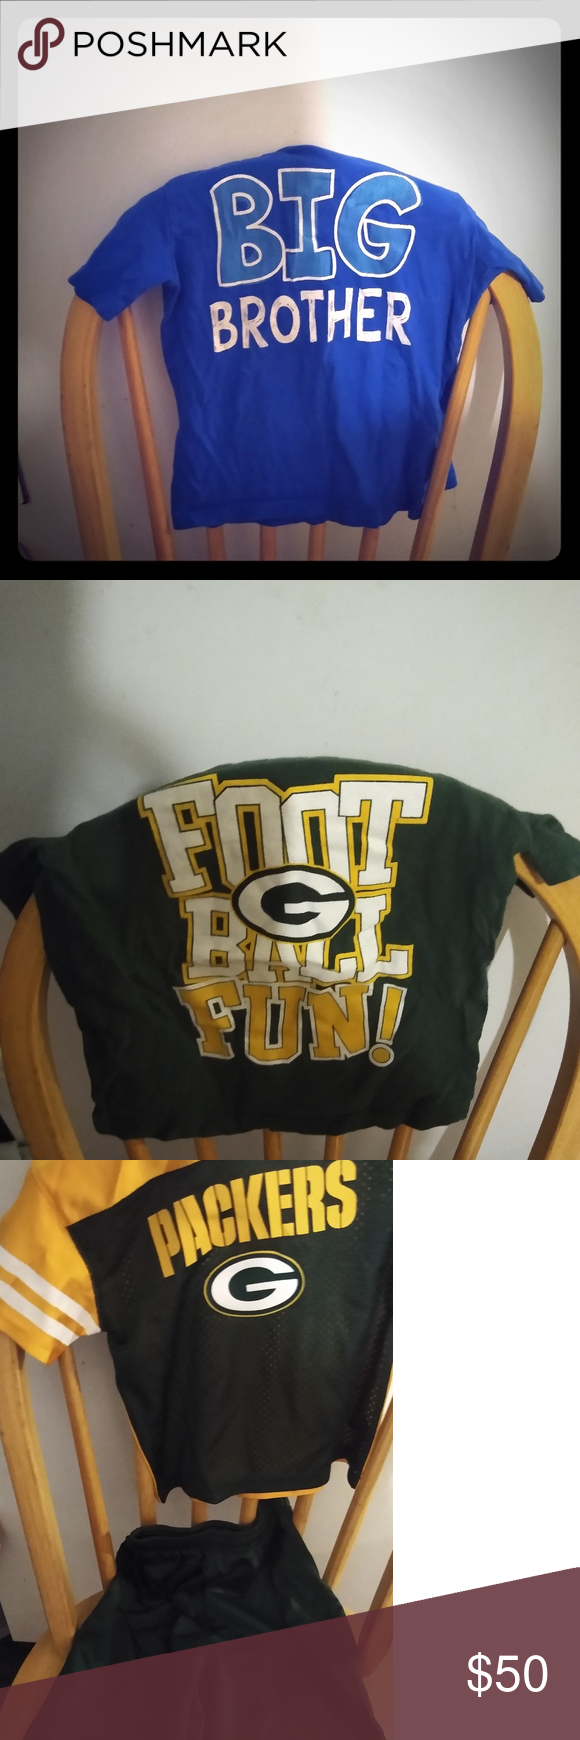 Green Bay Packers Outfit And Other Stuff Green Bay Packers Clothing Nfl Shirts Sweatshirts Hoodie